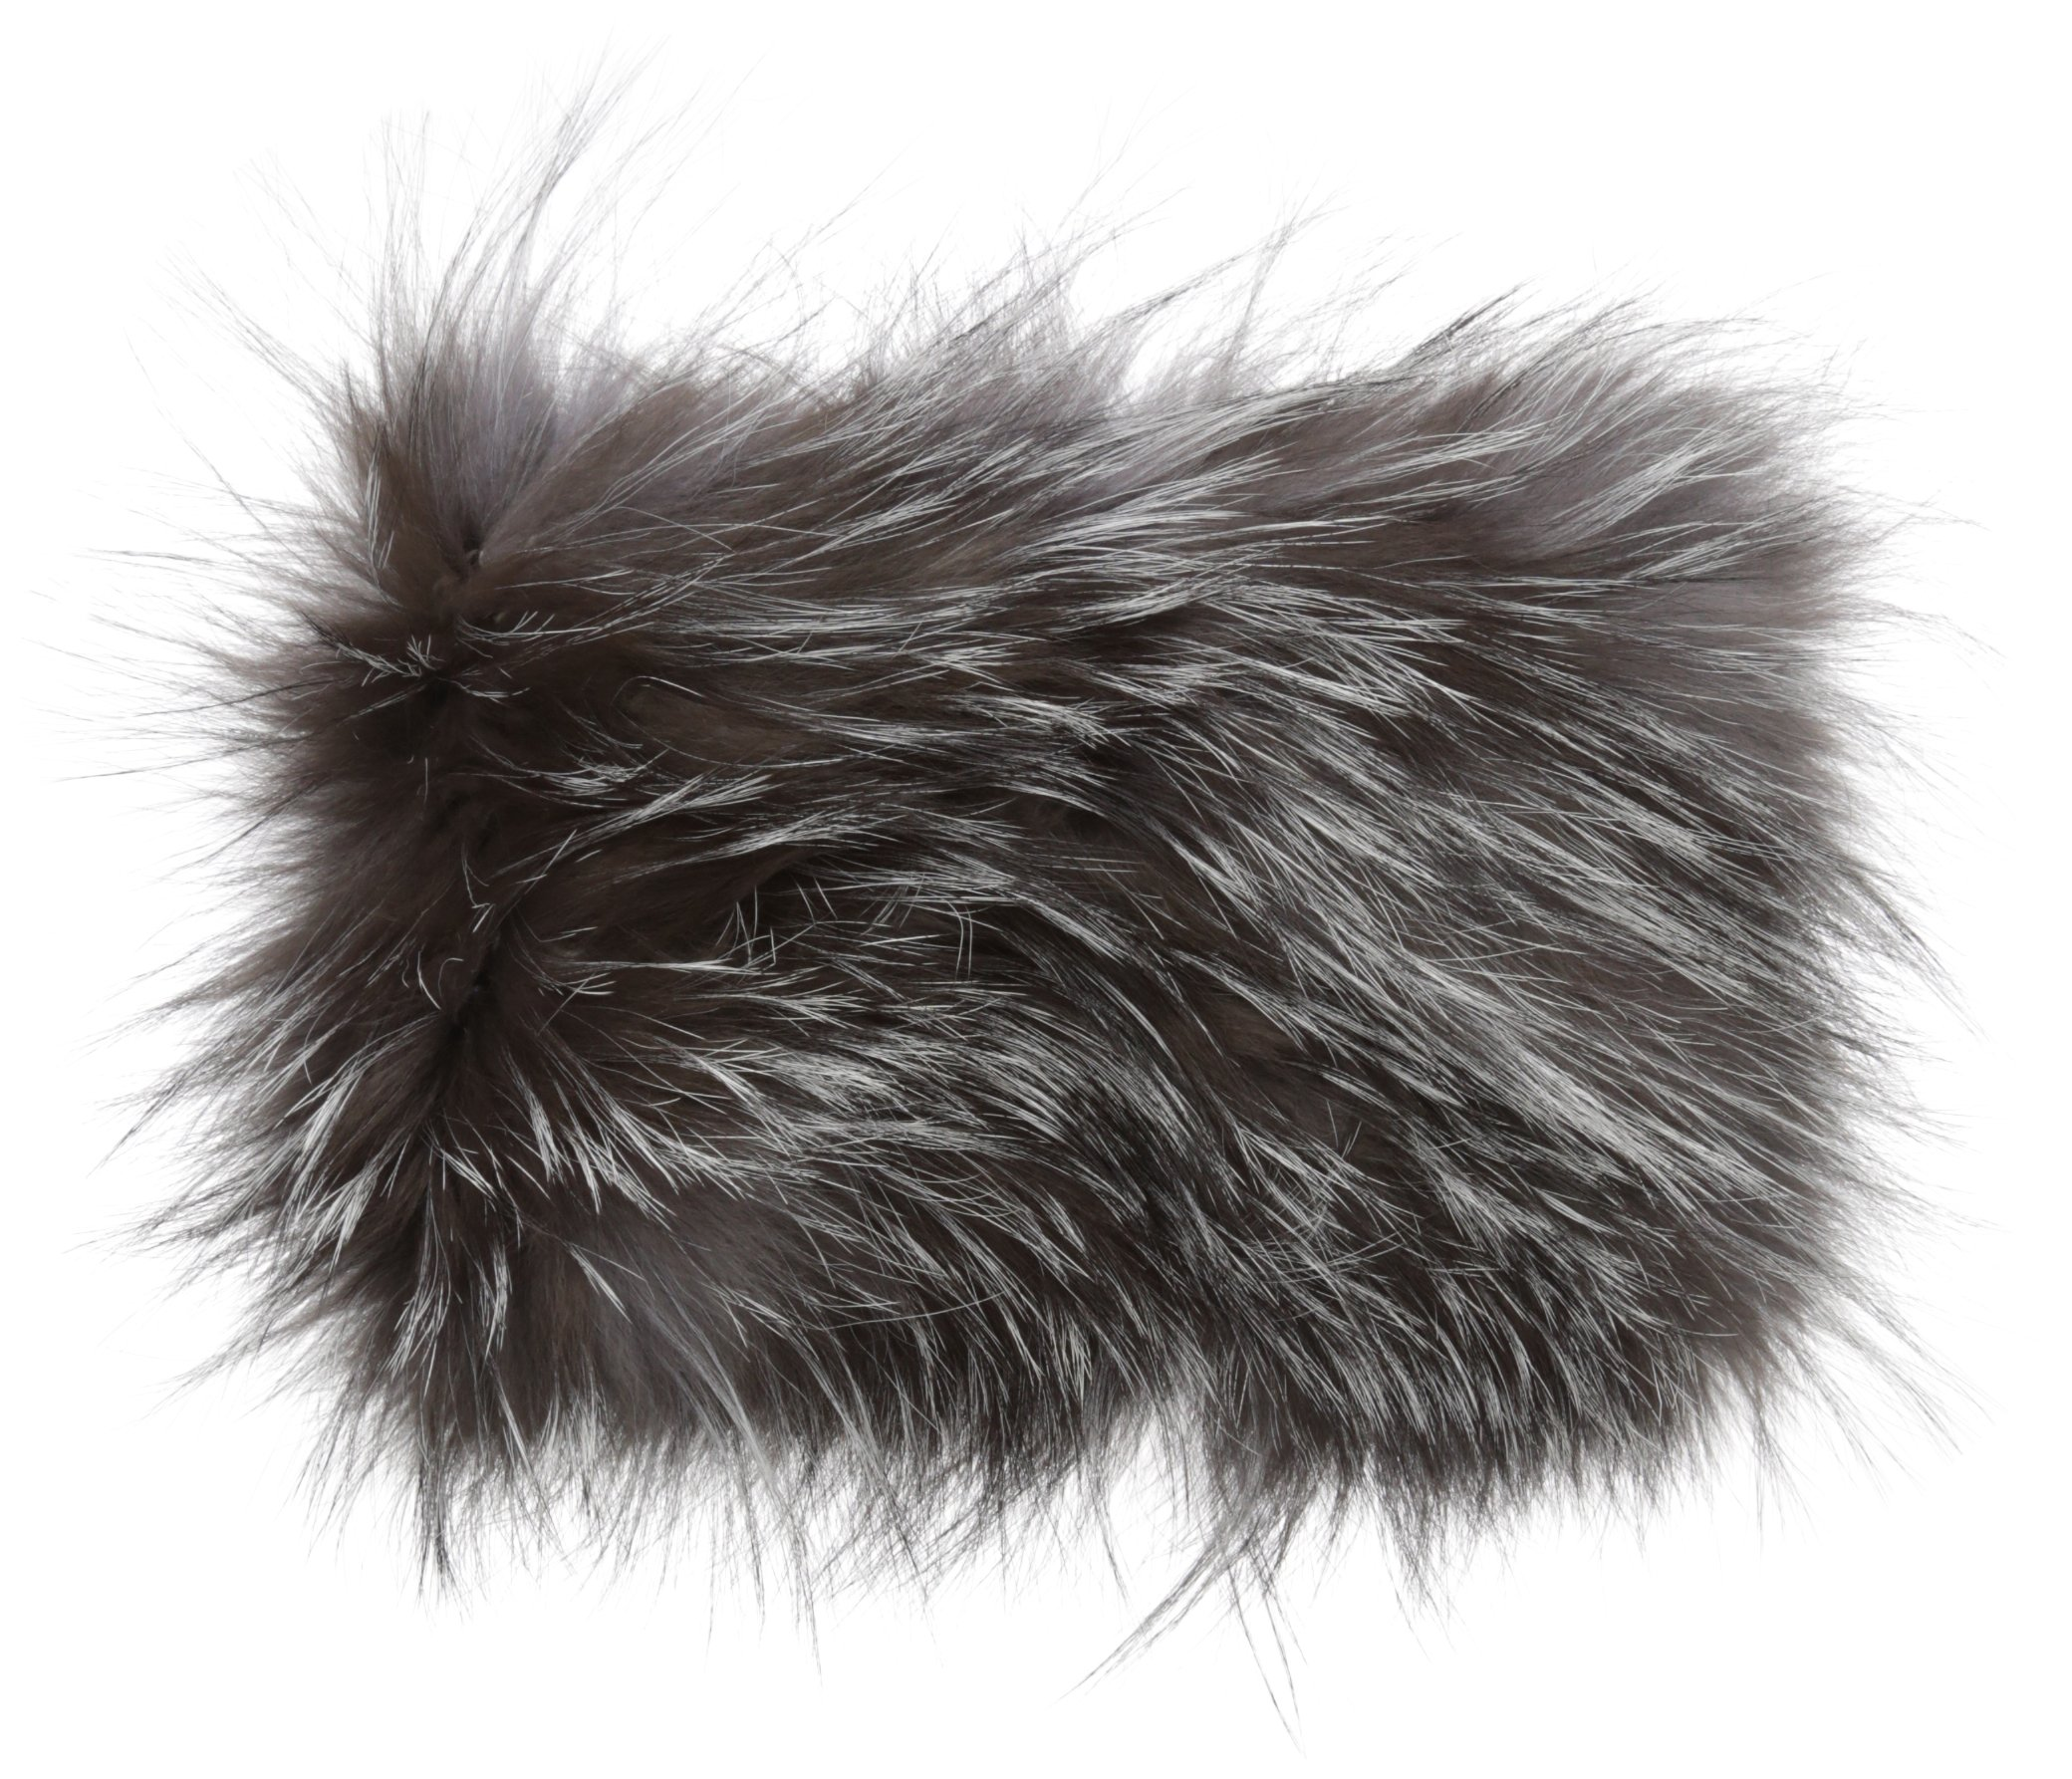 La Fiorentina Women's Fur Headband, Grey, One Size by La Fiorentina